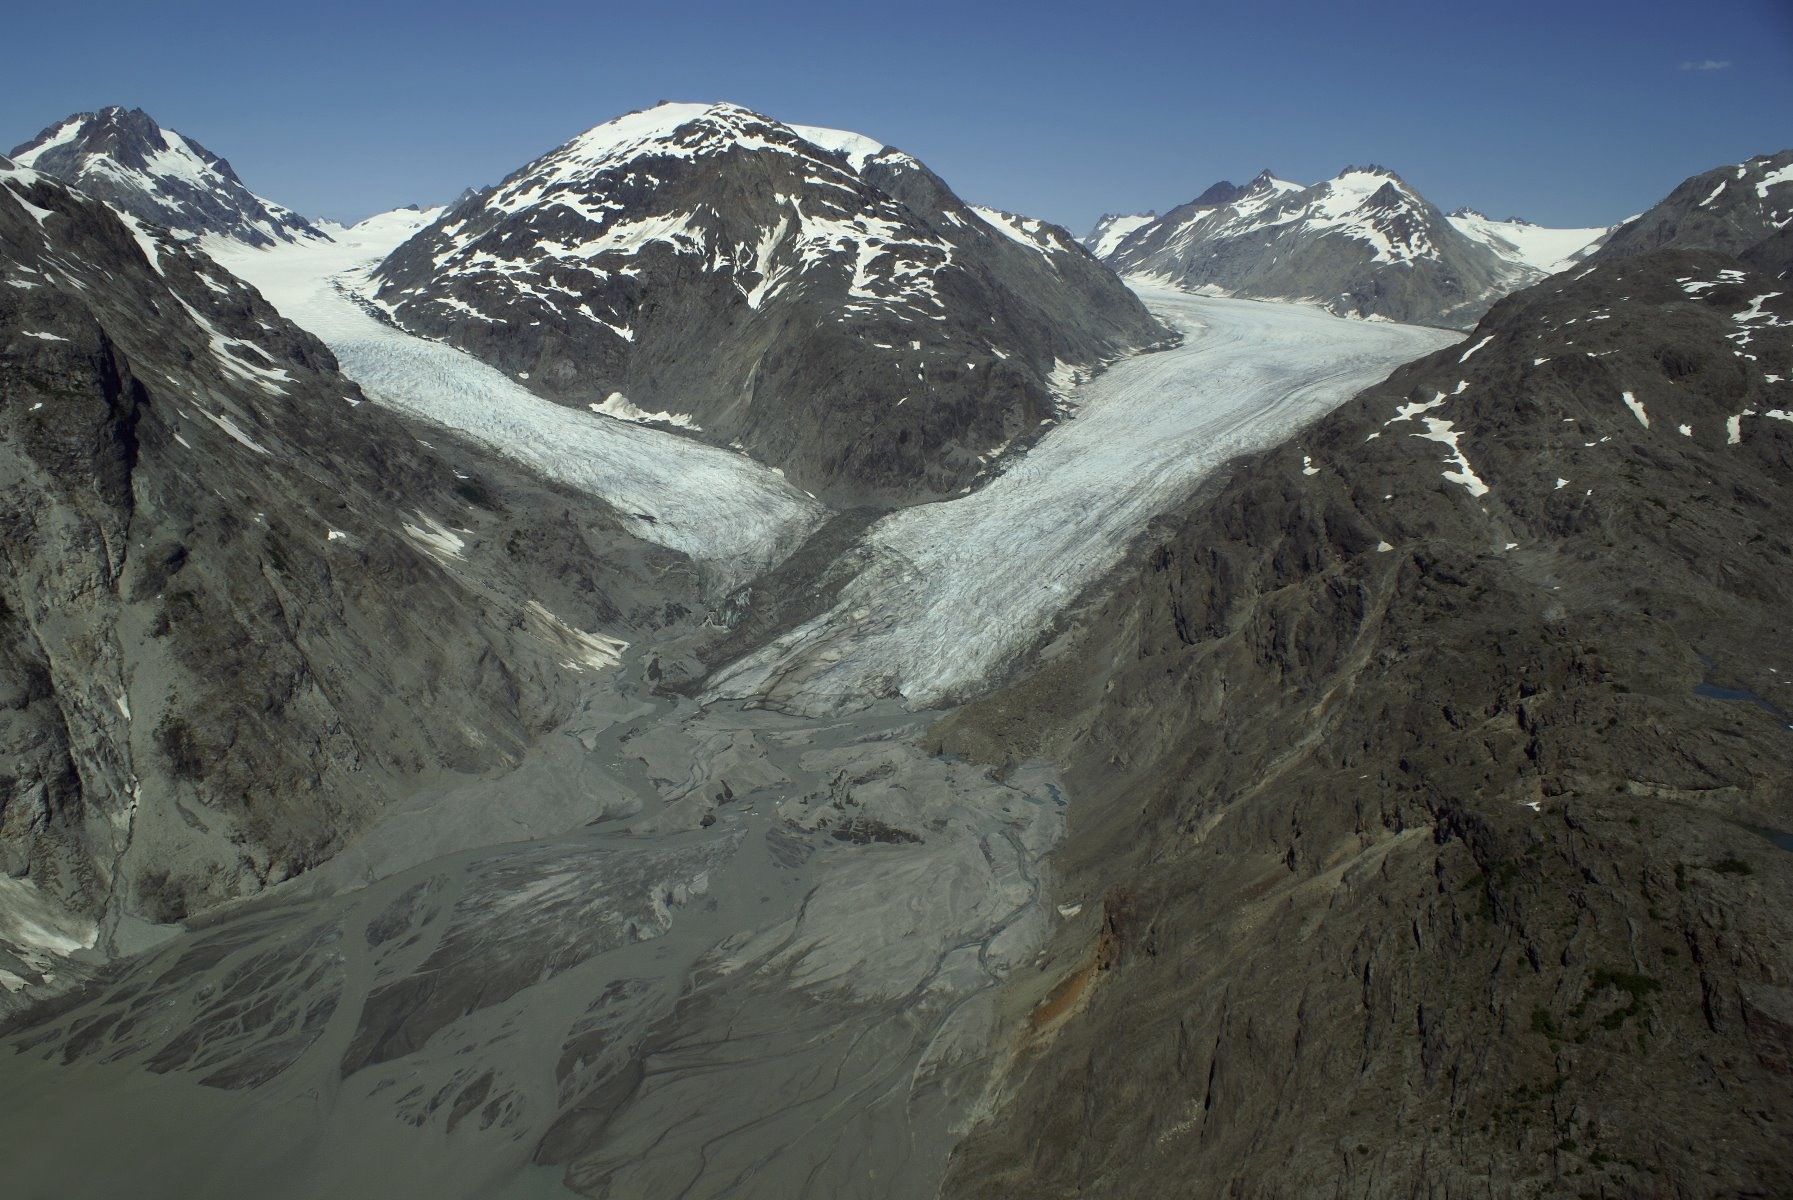 Muir Glacier in 2007 is no longer a tidewater glacier; it has retreated.